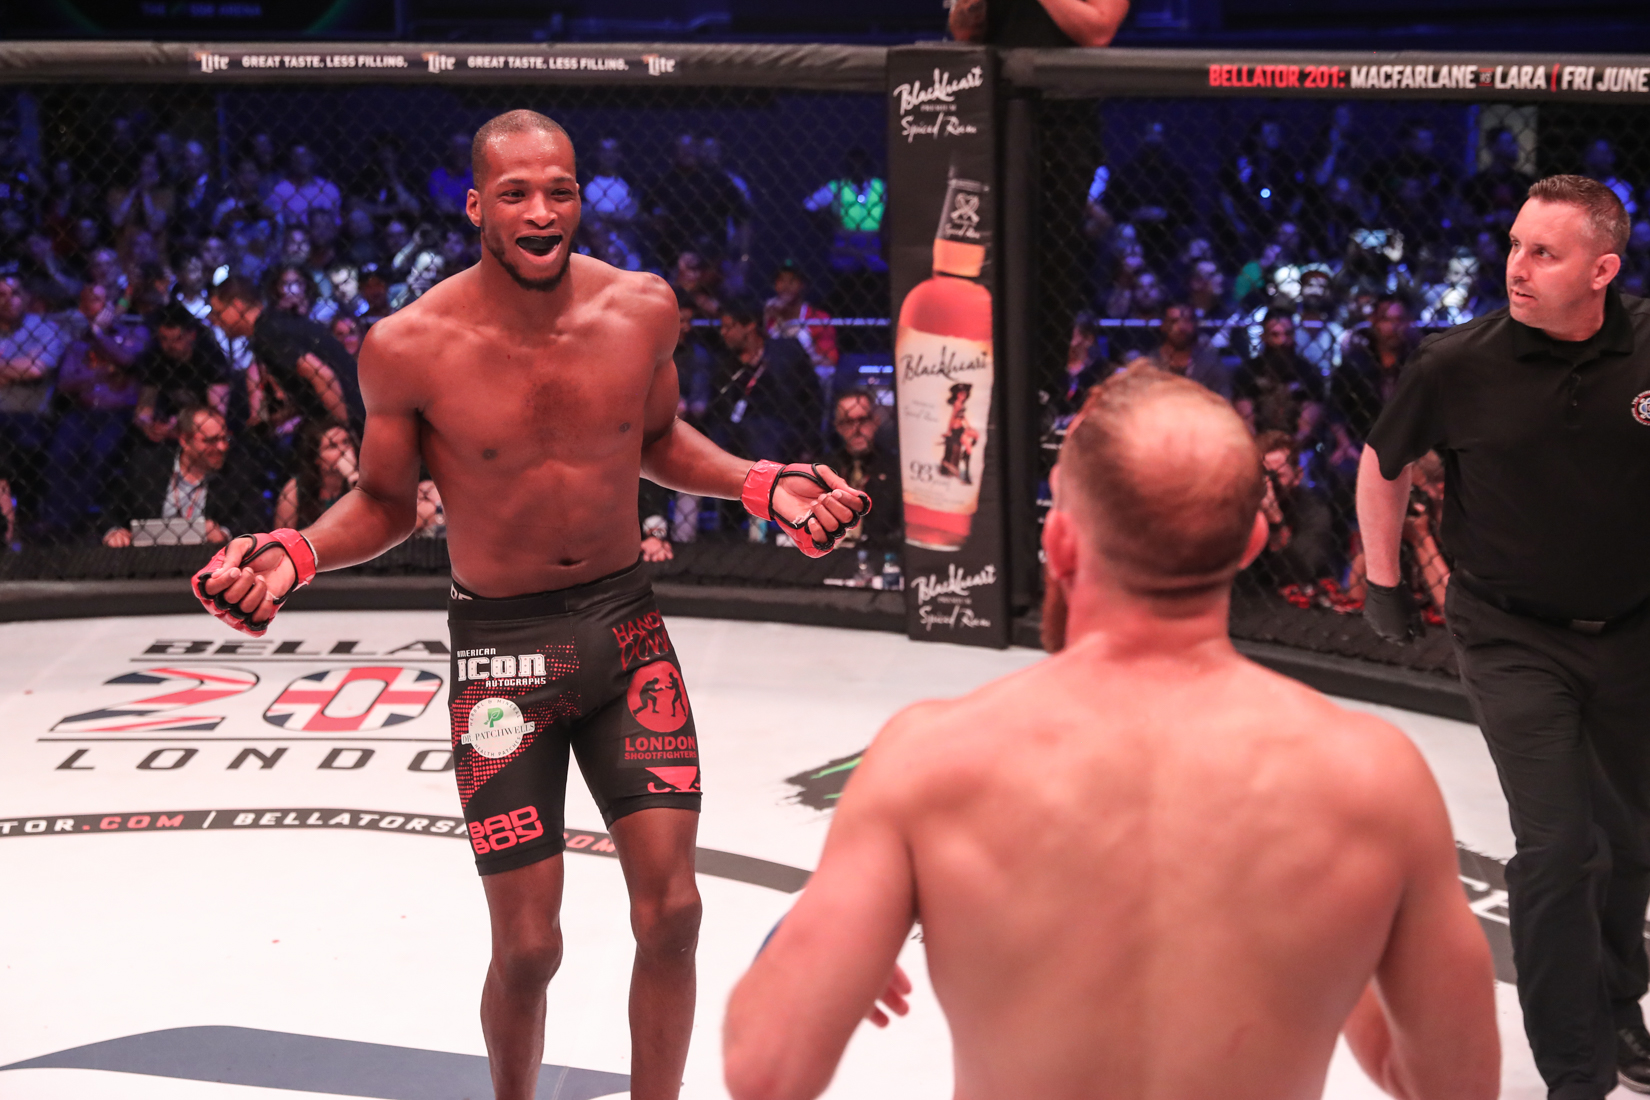 Michael 'Venom' Page vs Paul Daley confirmed for Bellator welterweight grand prix